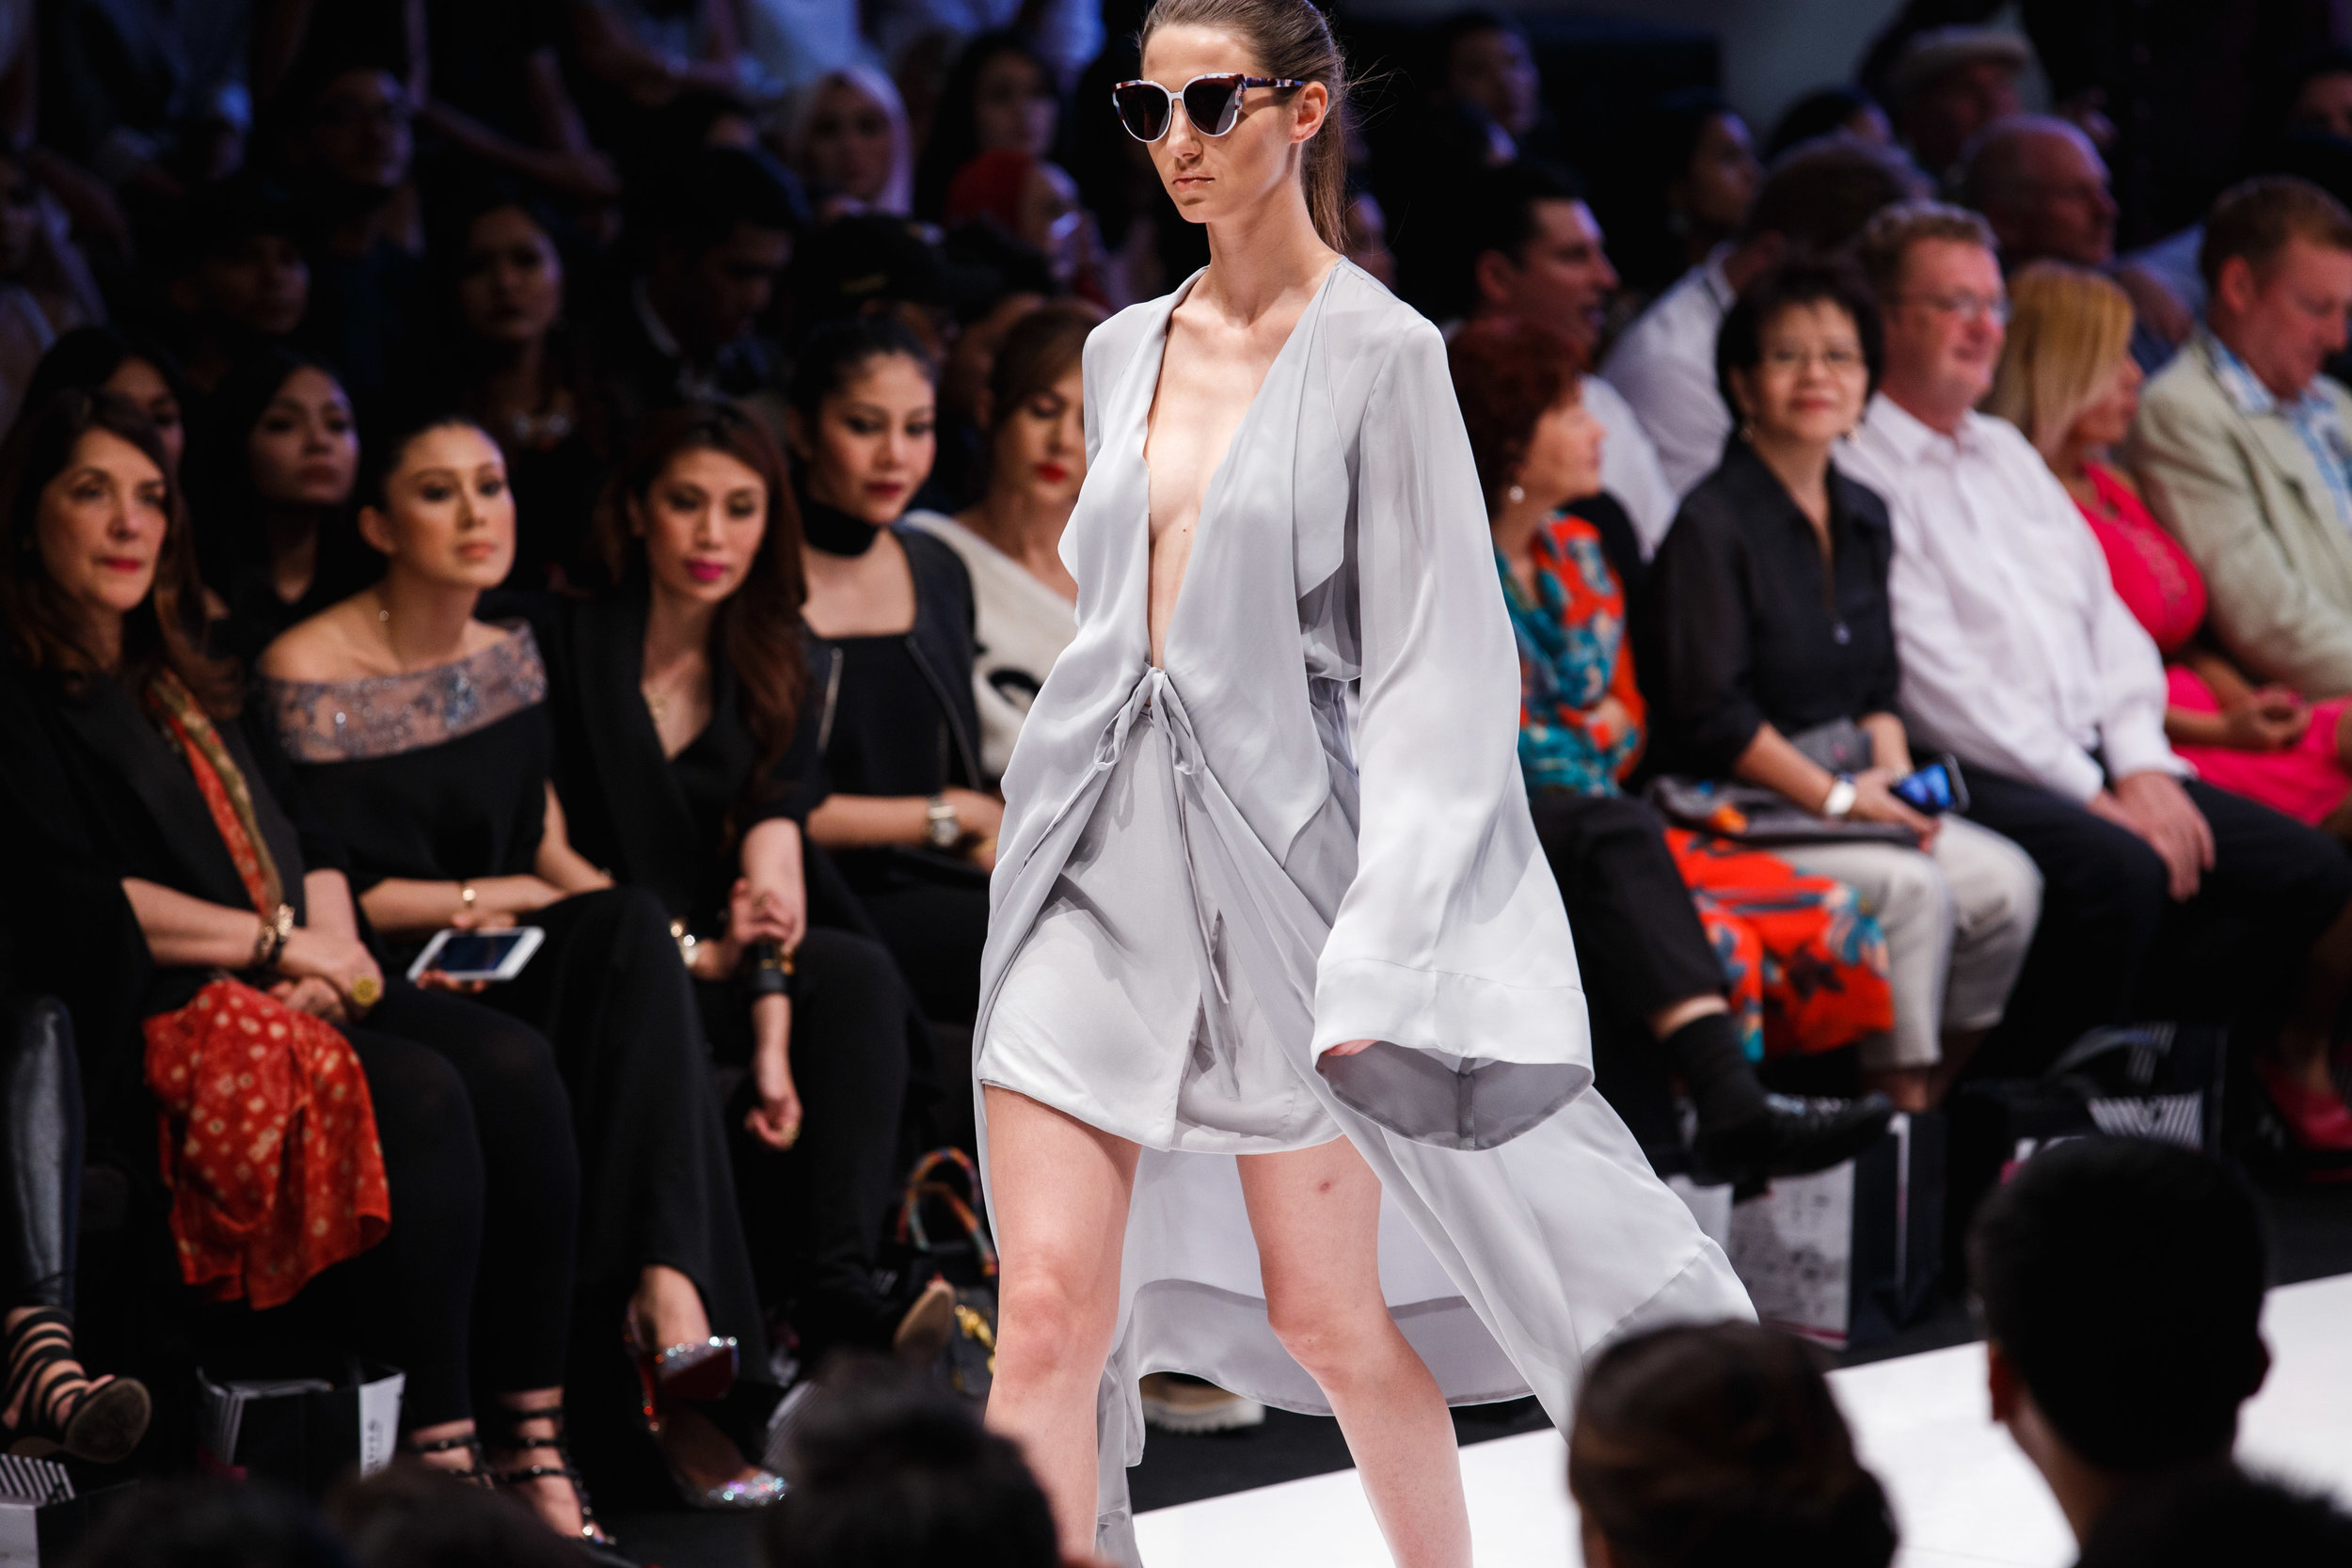 KLFW 2016 - Day 2 - IMG_6825 - Photo by All Is Amazing.jpg